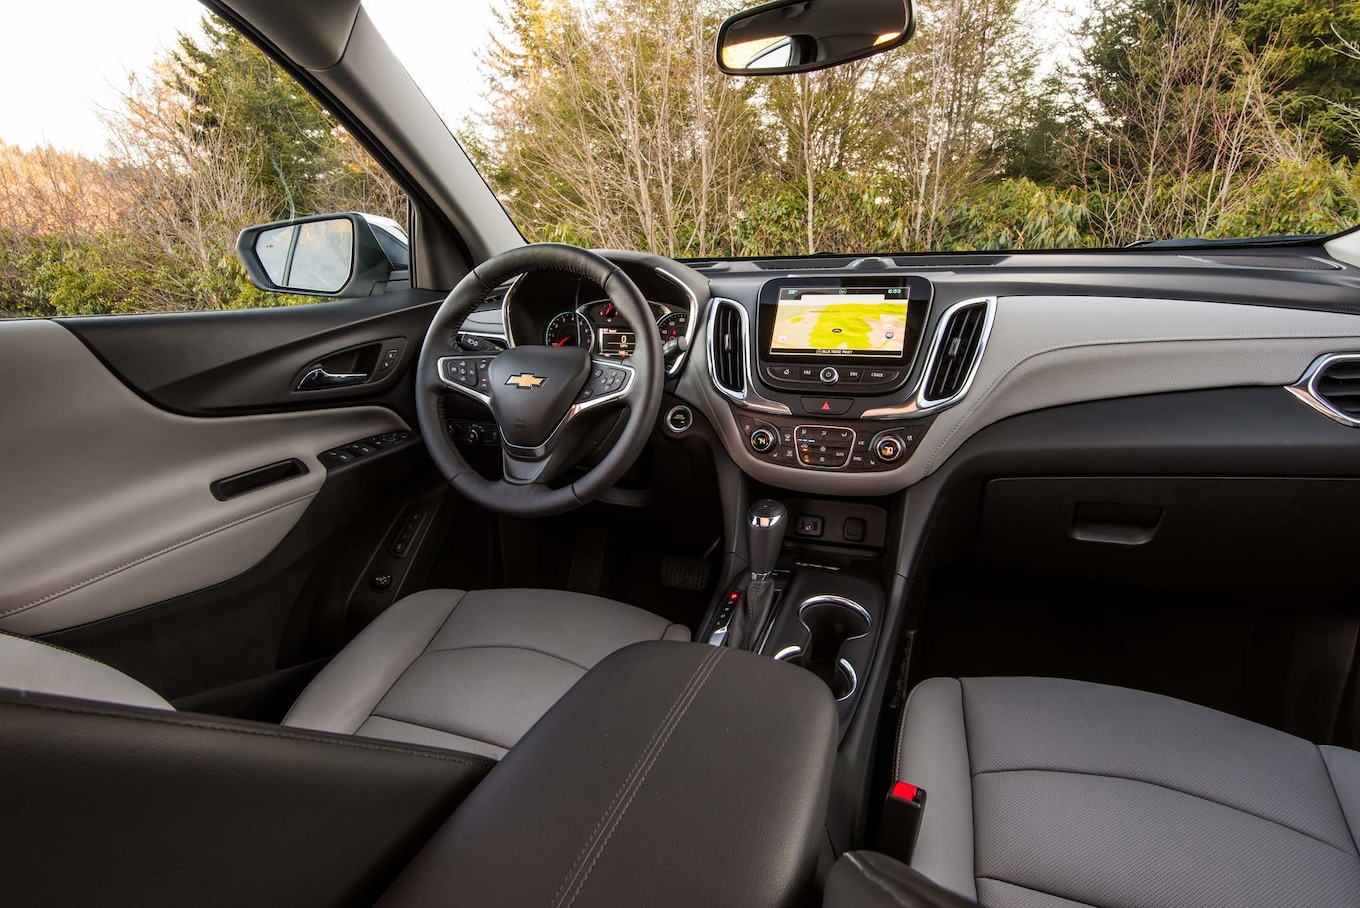 2018 Chevrolet Equinox Interior Wallpaper (14)